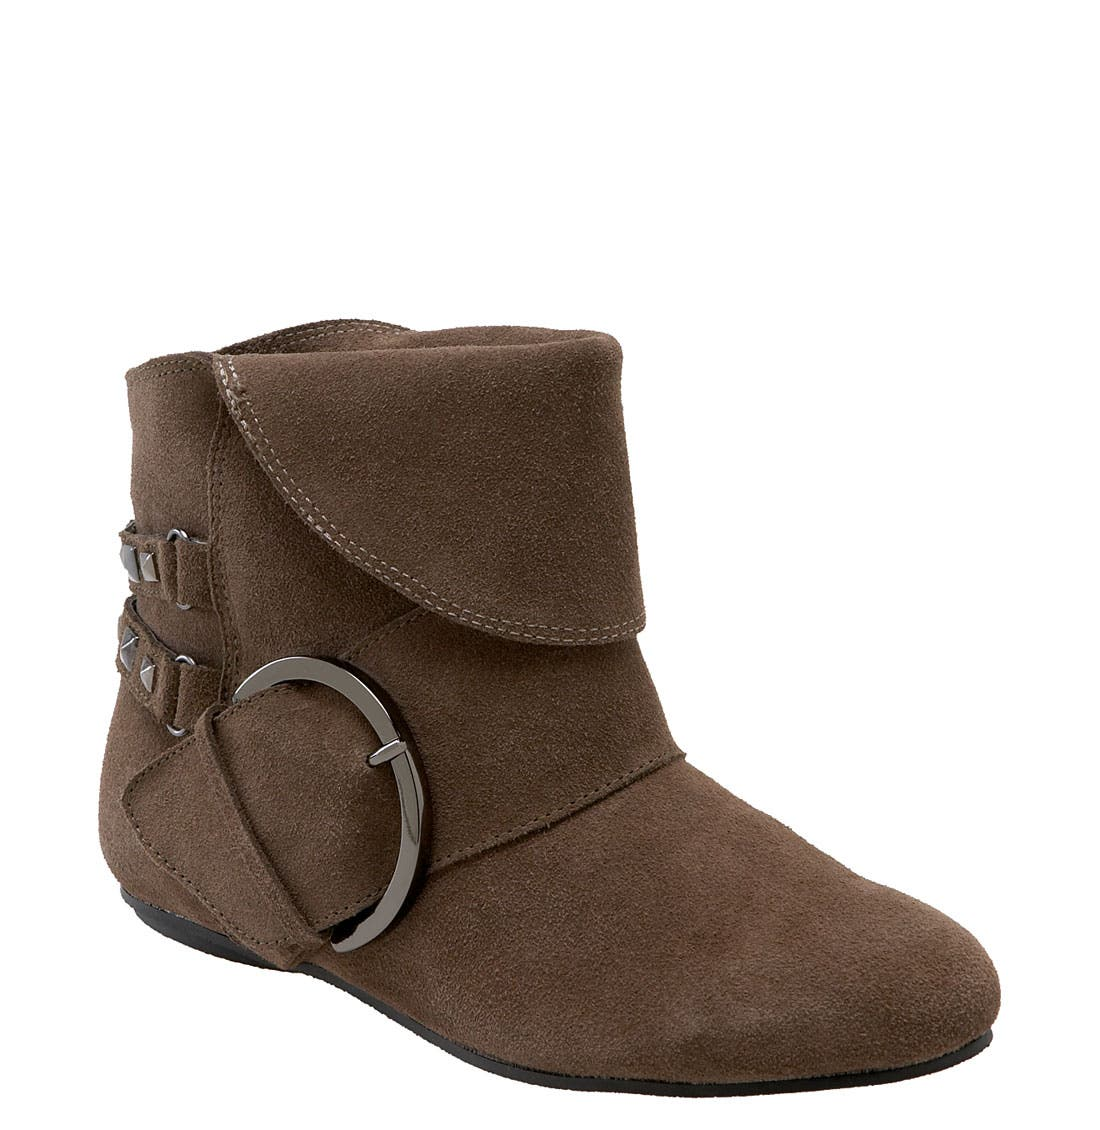 Main Image - Naughty Monkey 'Rock Out' Bootie